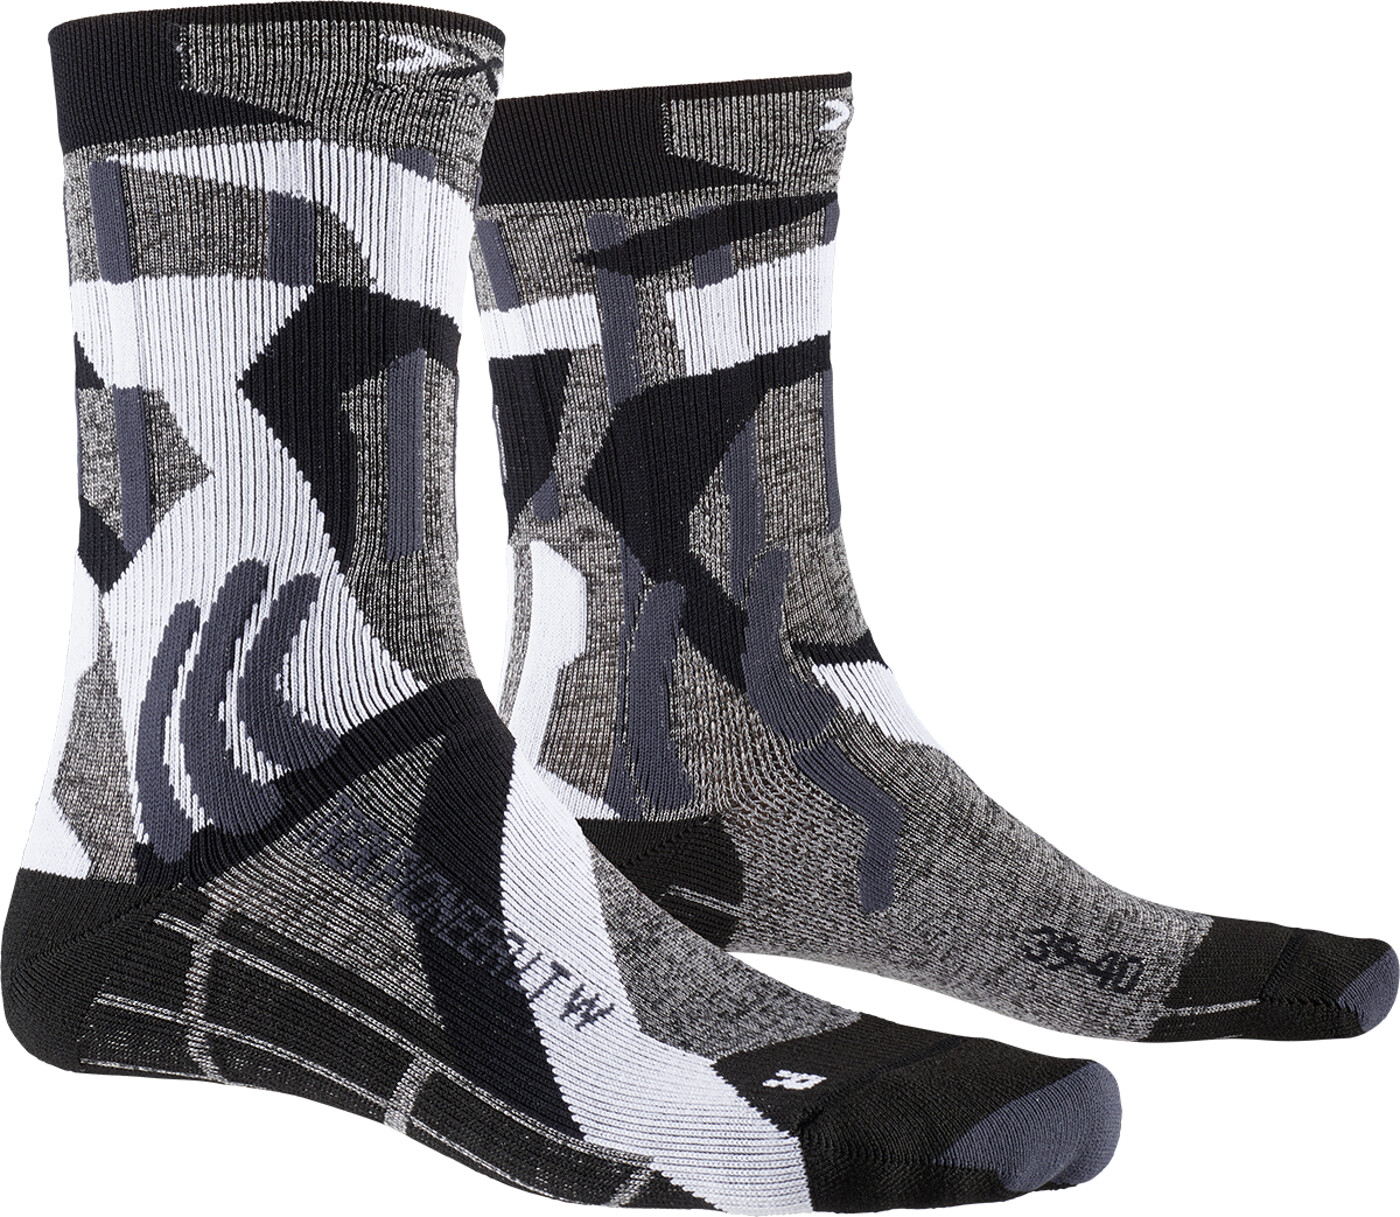 X-BIONIC X-SOCKS® TREK PIONEER LIGHT - Damen